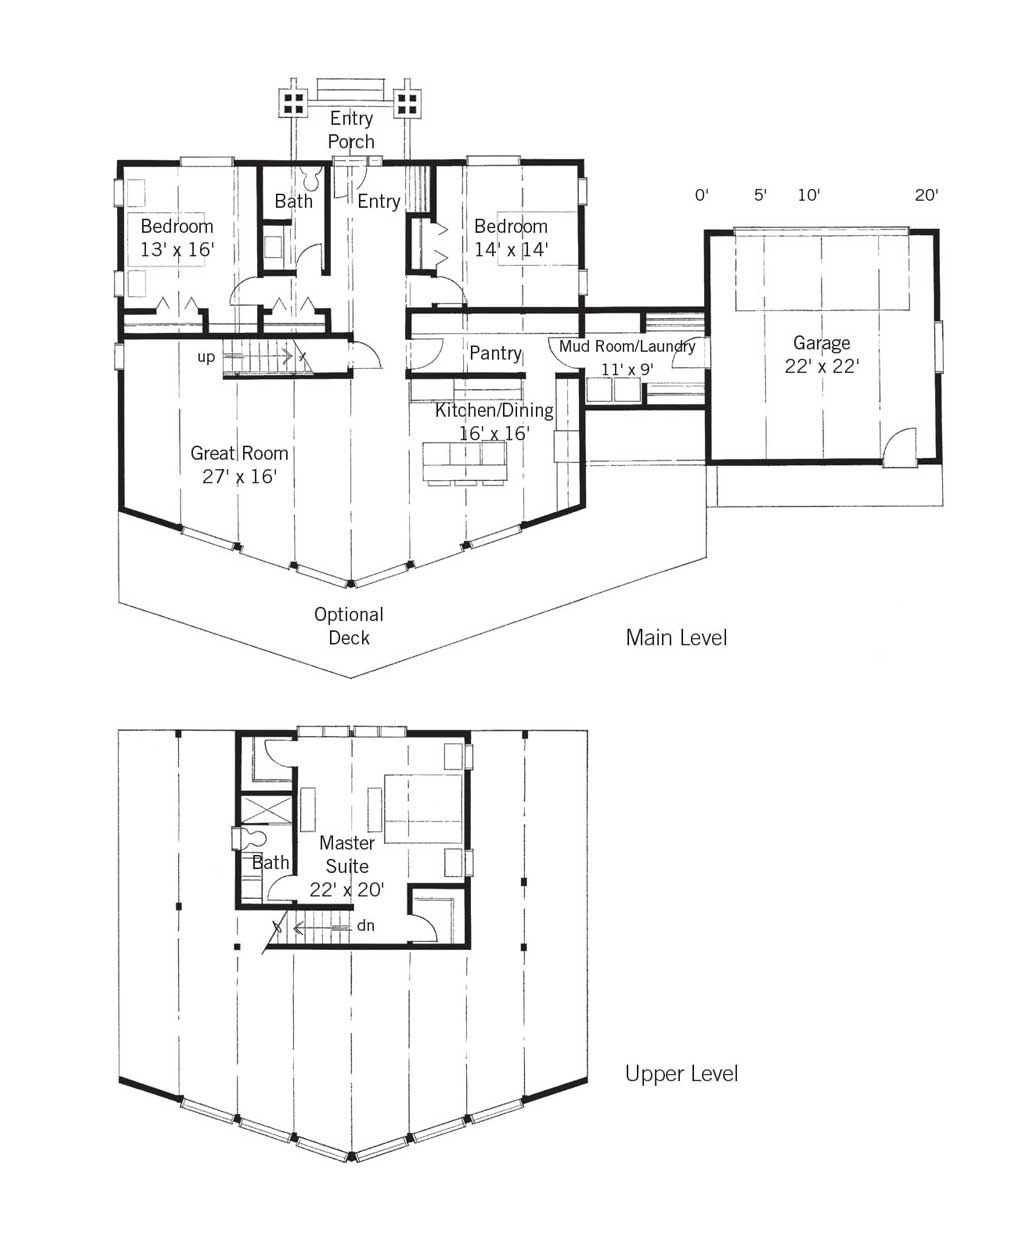 Lindal cedar homes floor plans thefloors co for Cedar home floor plans